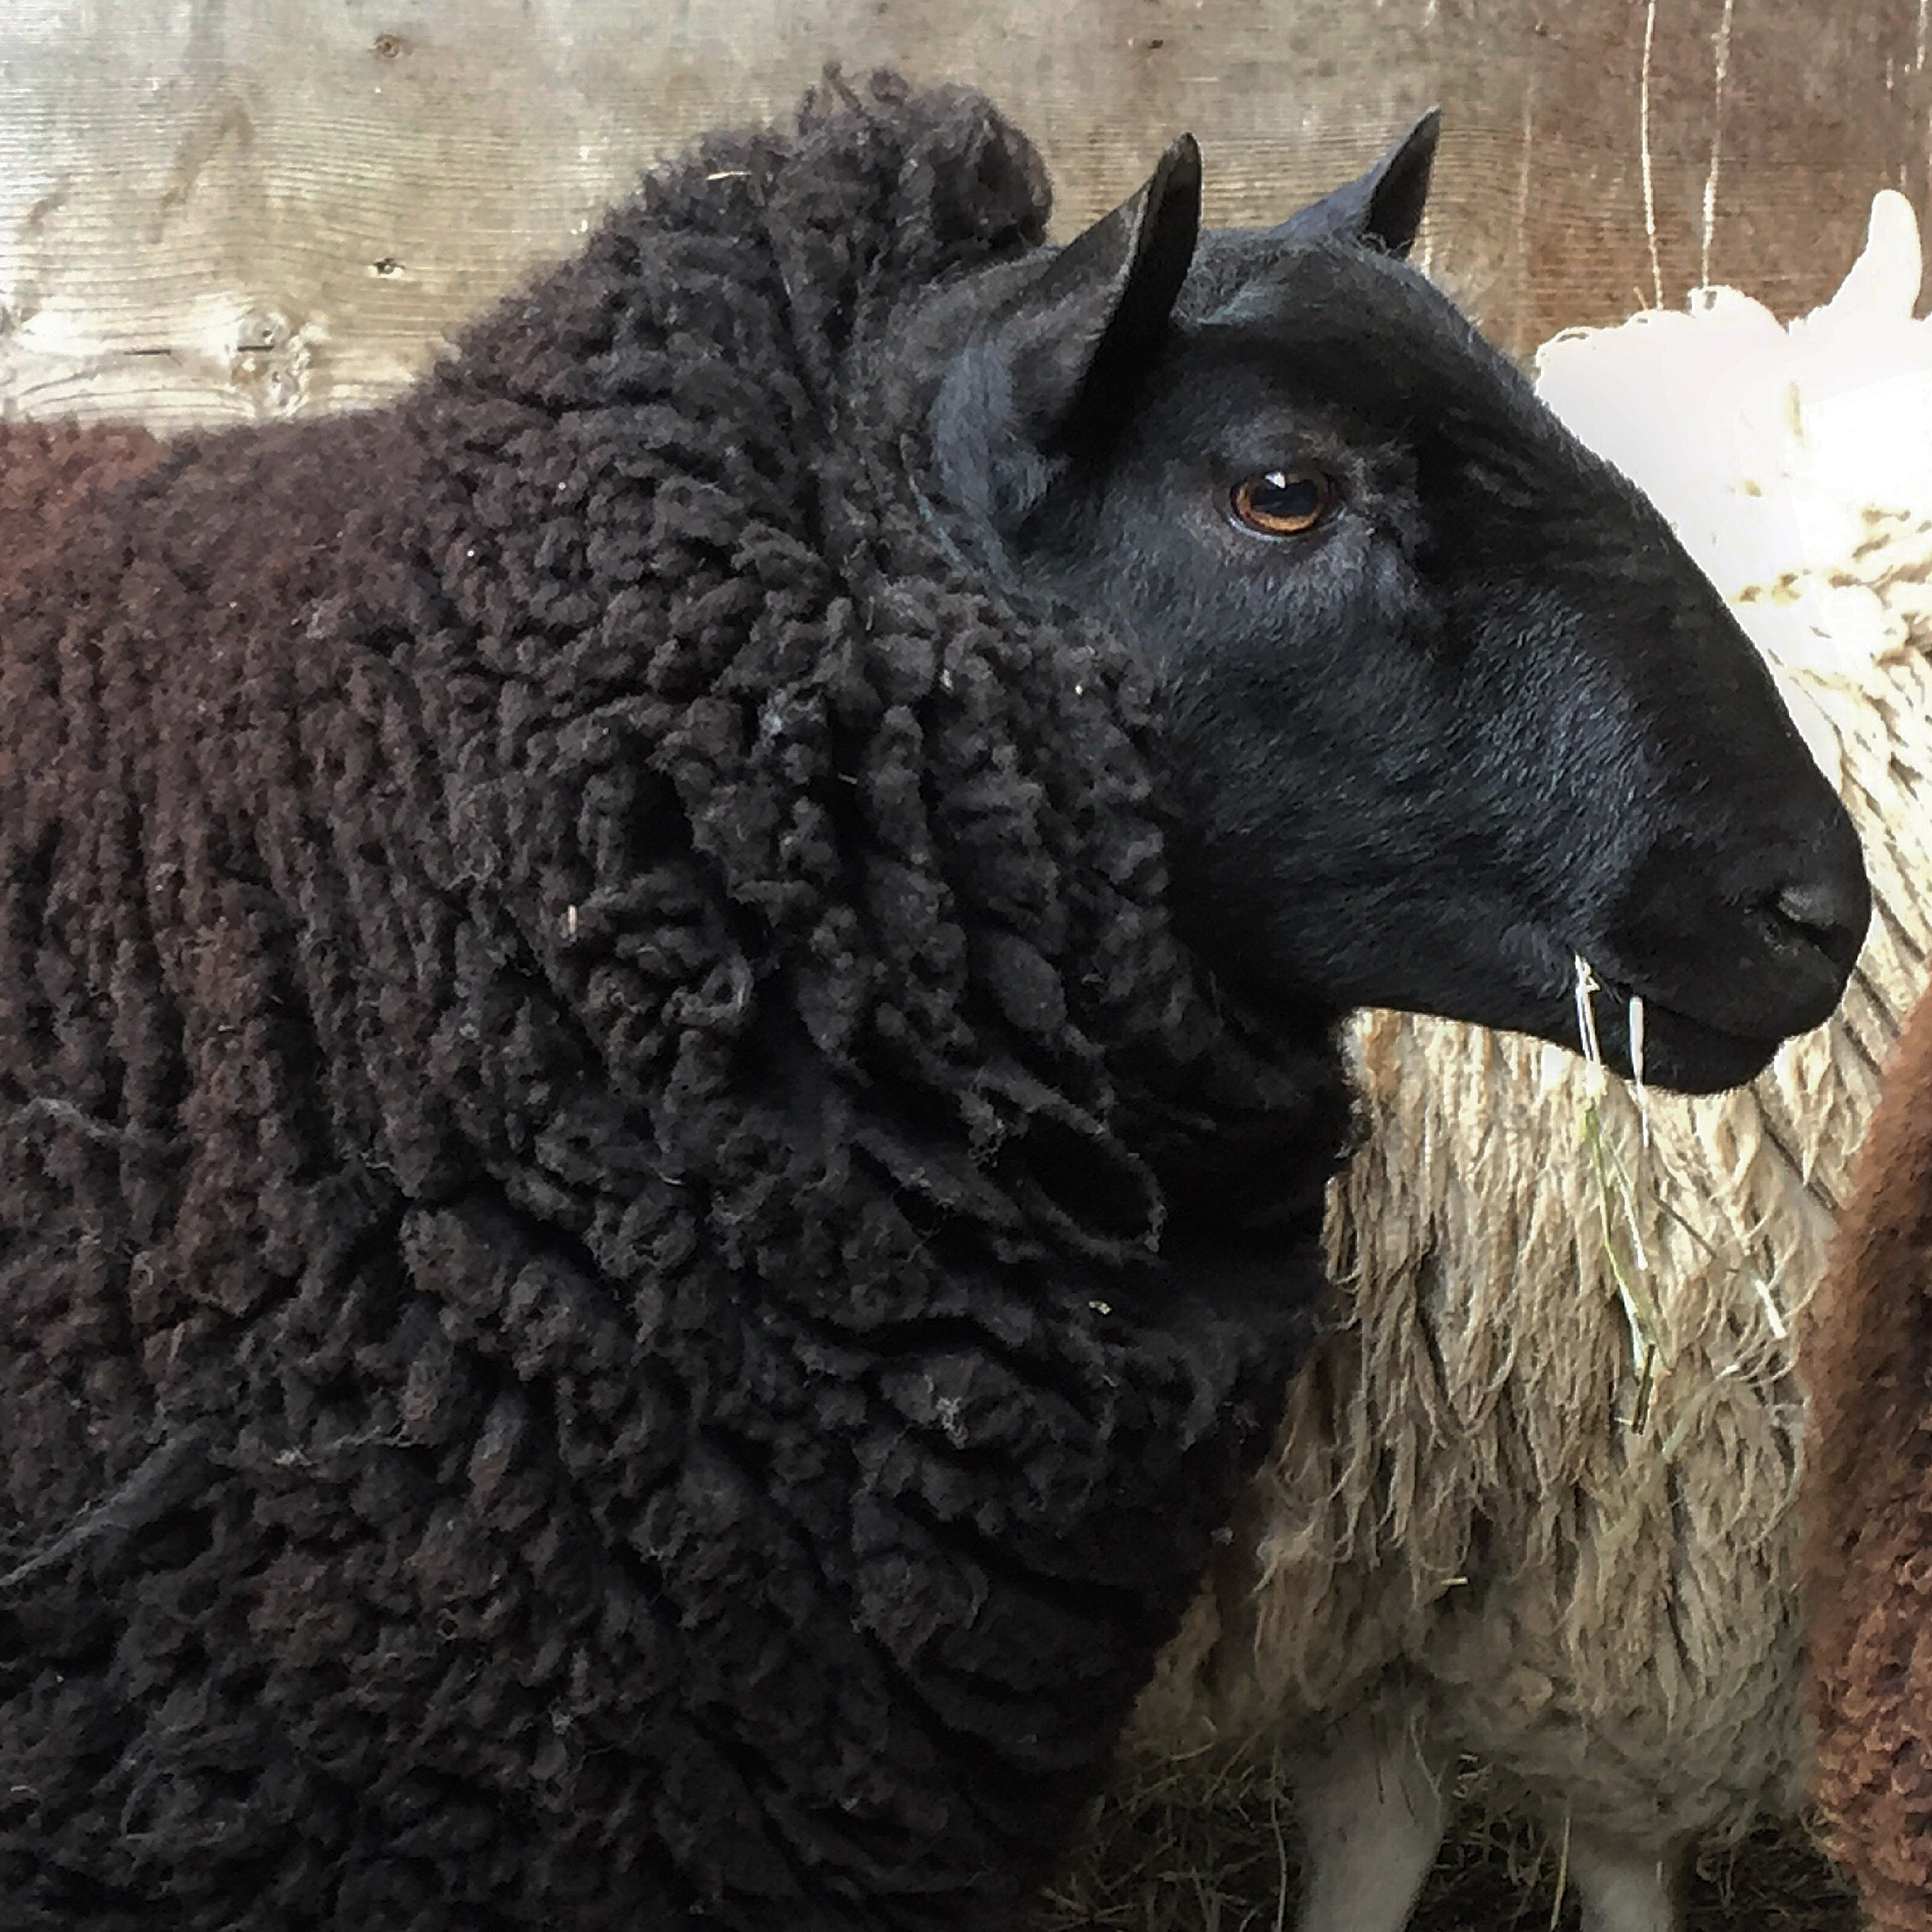 "Black 2018 Ram  - Twin Black ram lamb out of our main black ram ""Randy"" and one of our main black flock ewes. We have been growing him out to see what he would become. We are very pleased with how well he has developed and we are now offering him for sale as a proven ram. $400. Contact for more info."